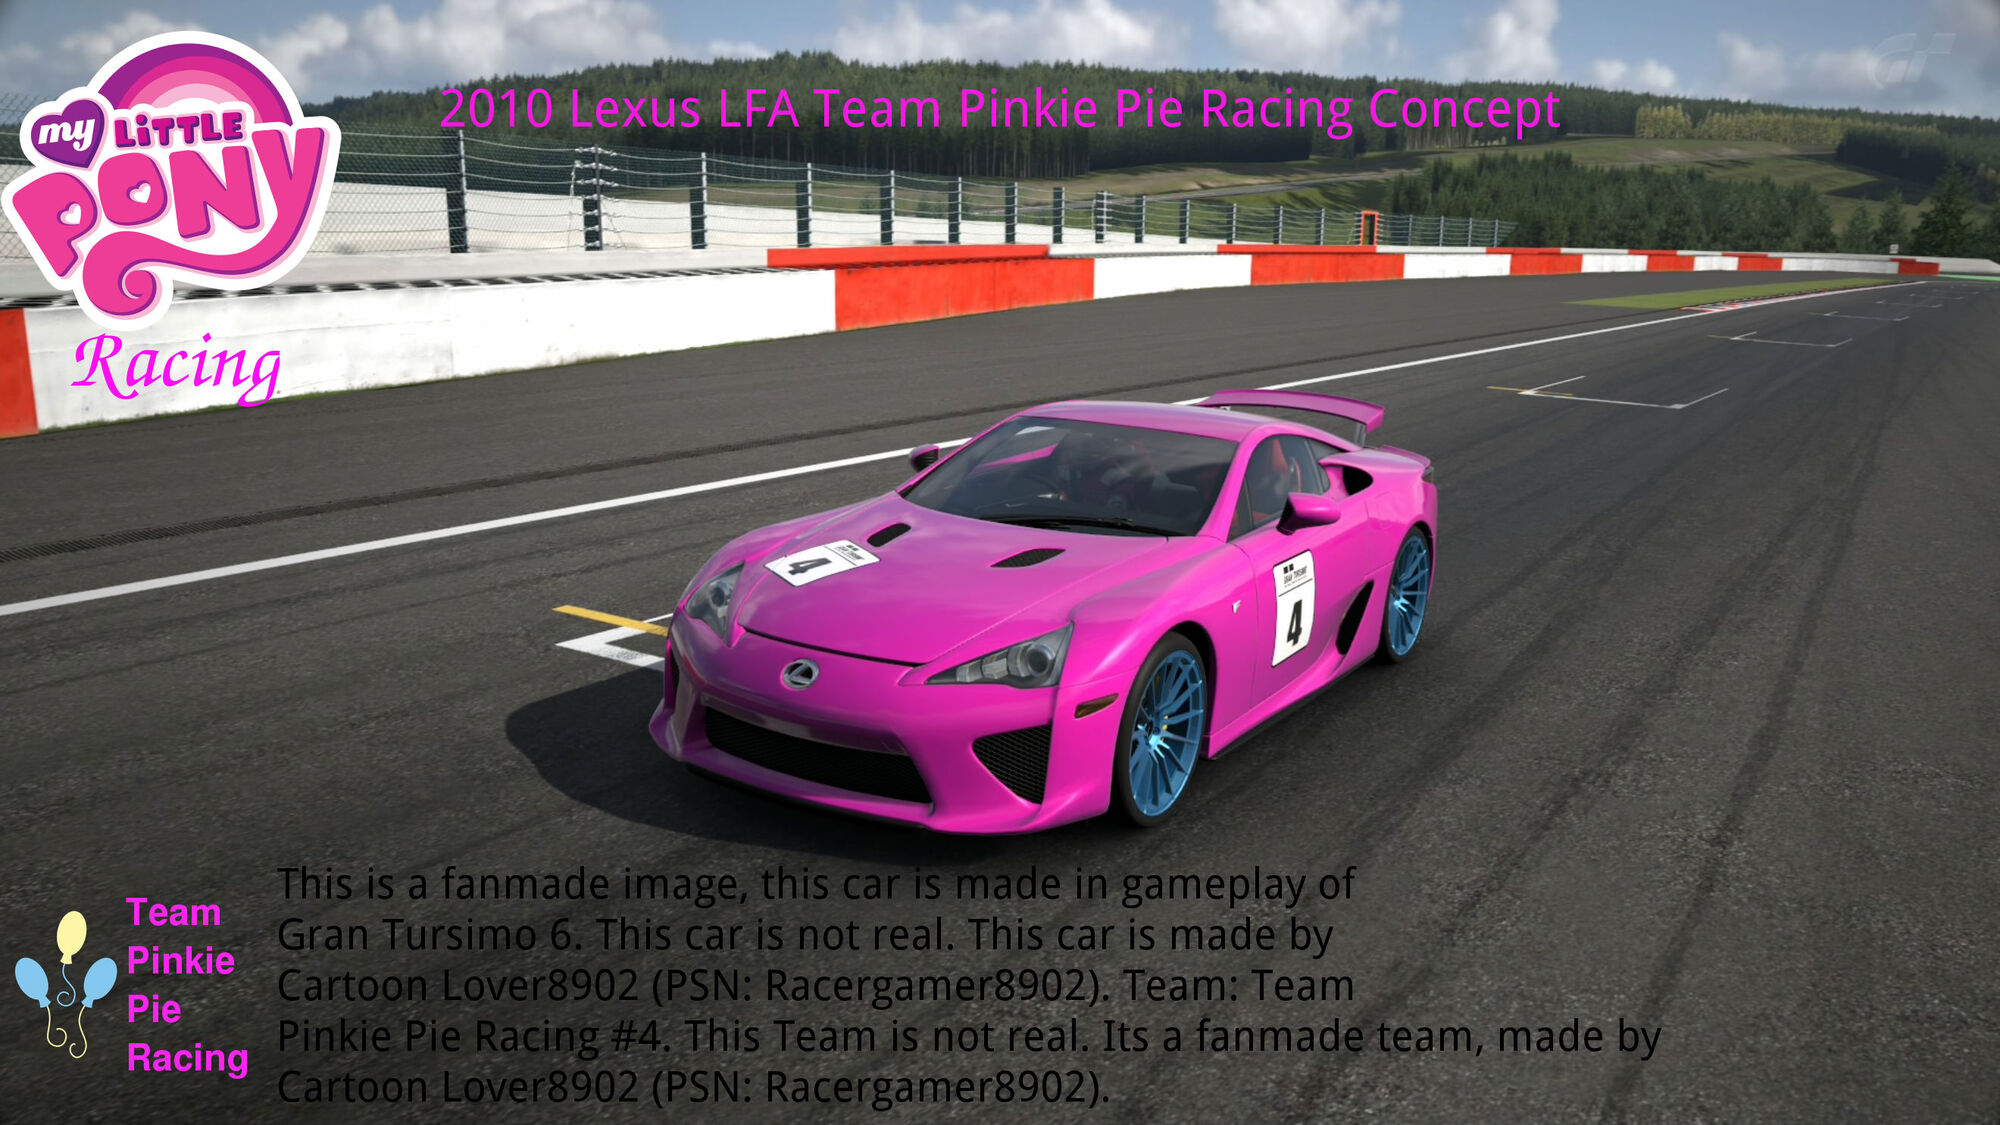 https://vignette.wikia.nocookie.net/mlp/images/f/fe/FANMADE_MLP_Racing_Team_Pinkie_Pie%27s_car.jpg/revision/latest/scale-to-width-down/2000?cb=20160212213538